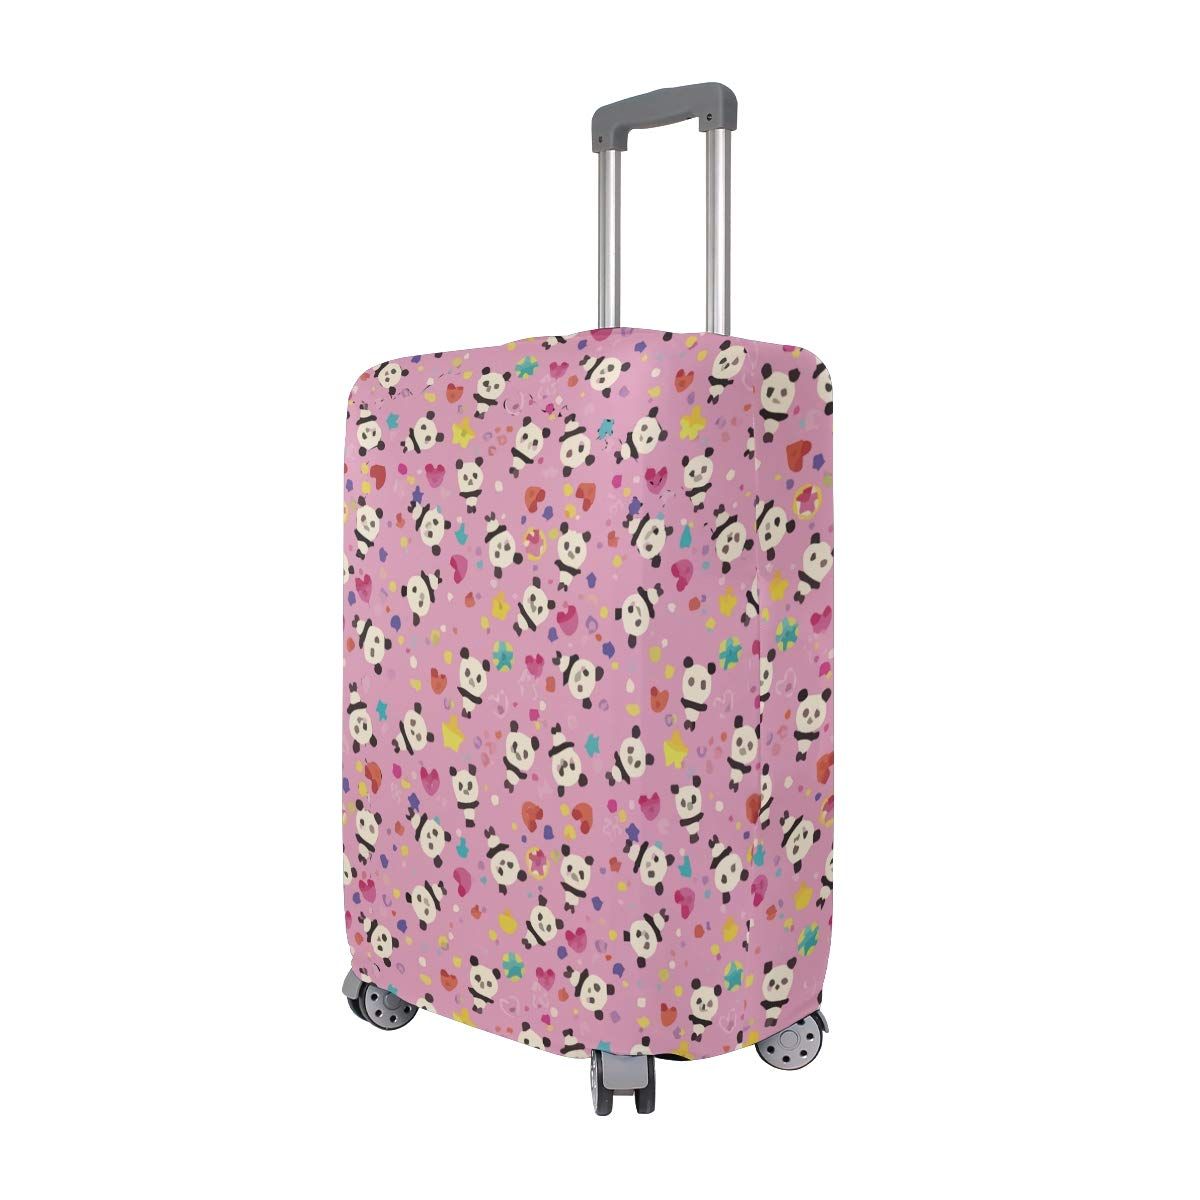 Giant Panda Flowers Heart Pink Travel Suitcase Protector Zipper Suitcase Cover Elastic